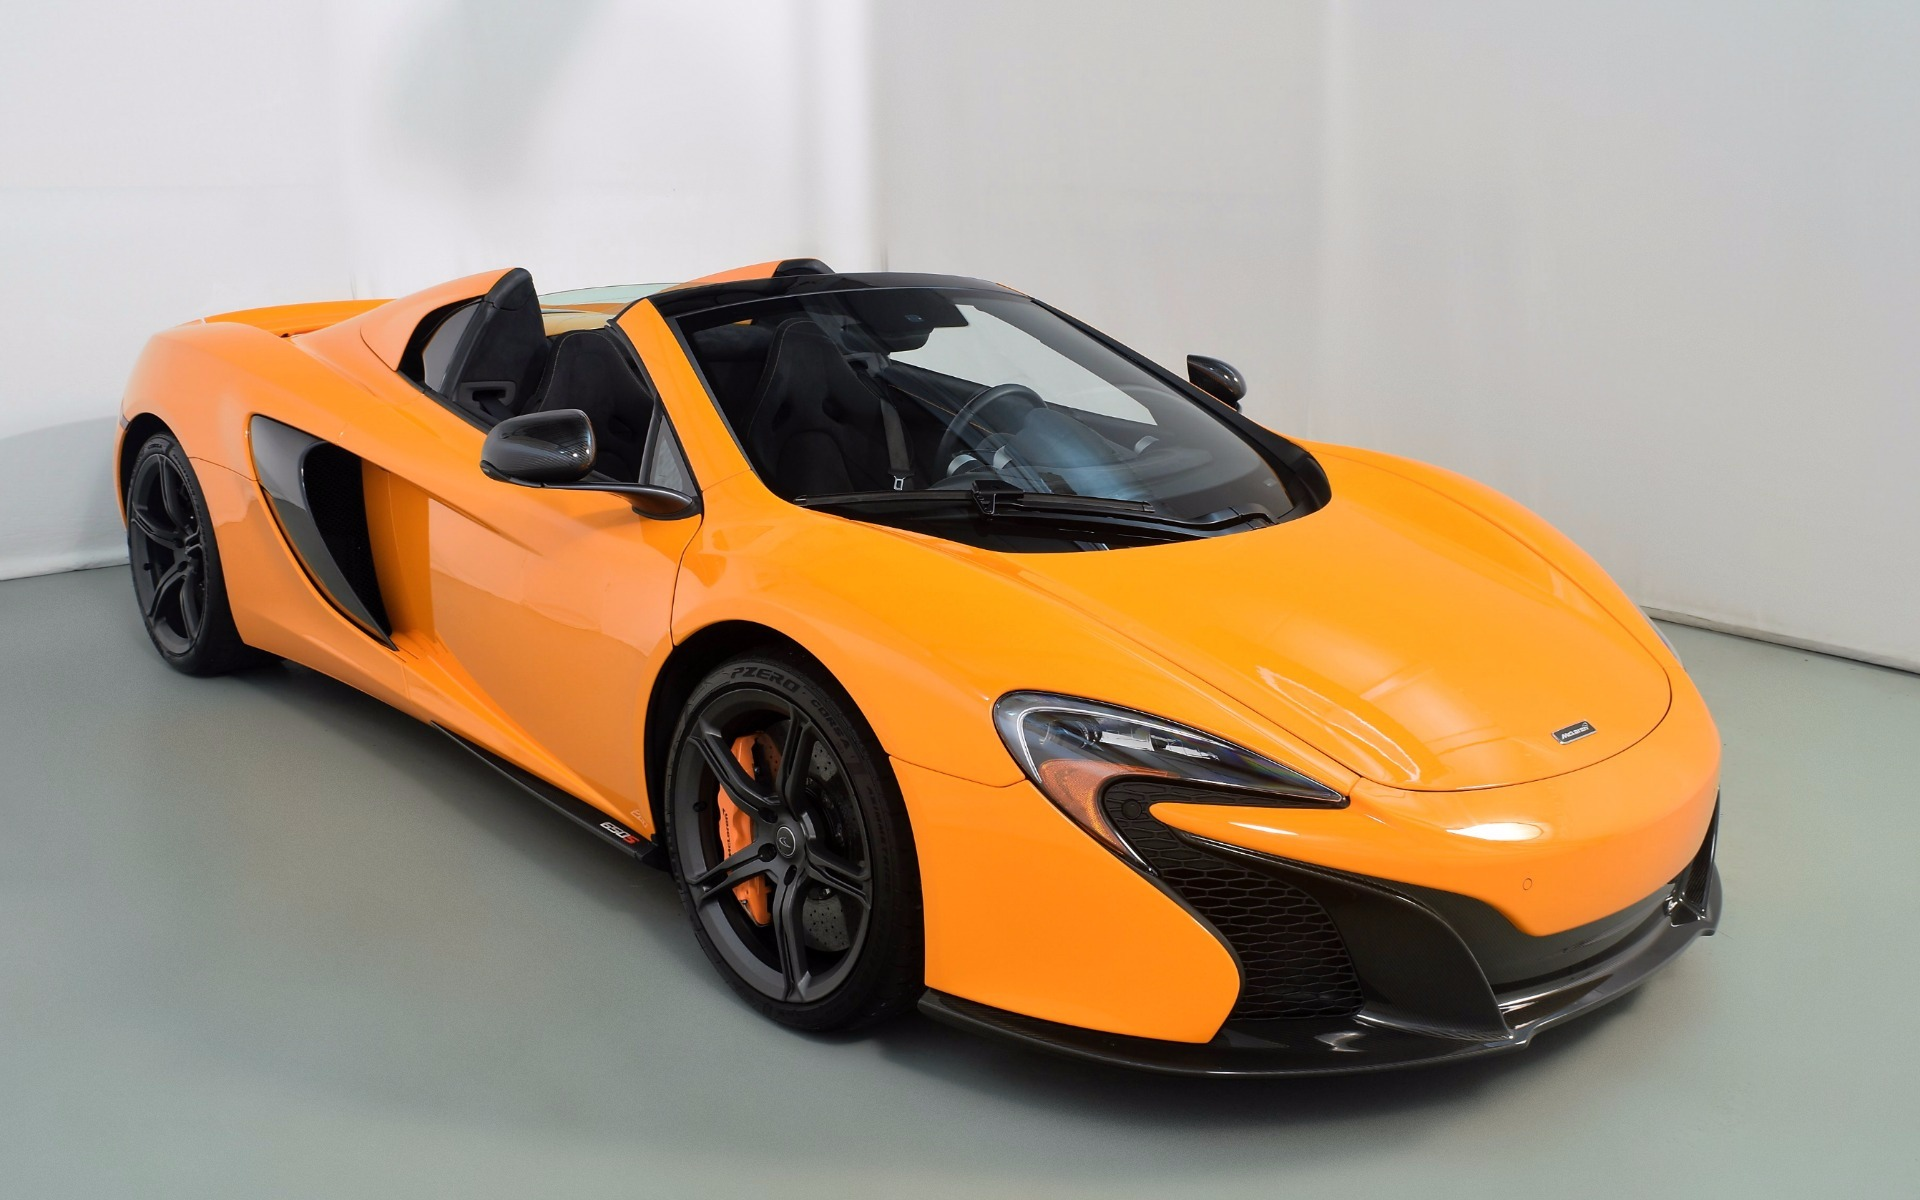 2016 mclaren 650s spider for sale in norwell ma 005992 mclaren boston. Black Bedroom Furniture Sets. Home Design Ideas